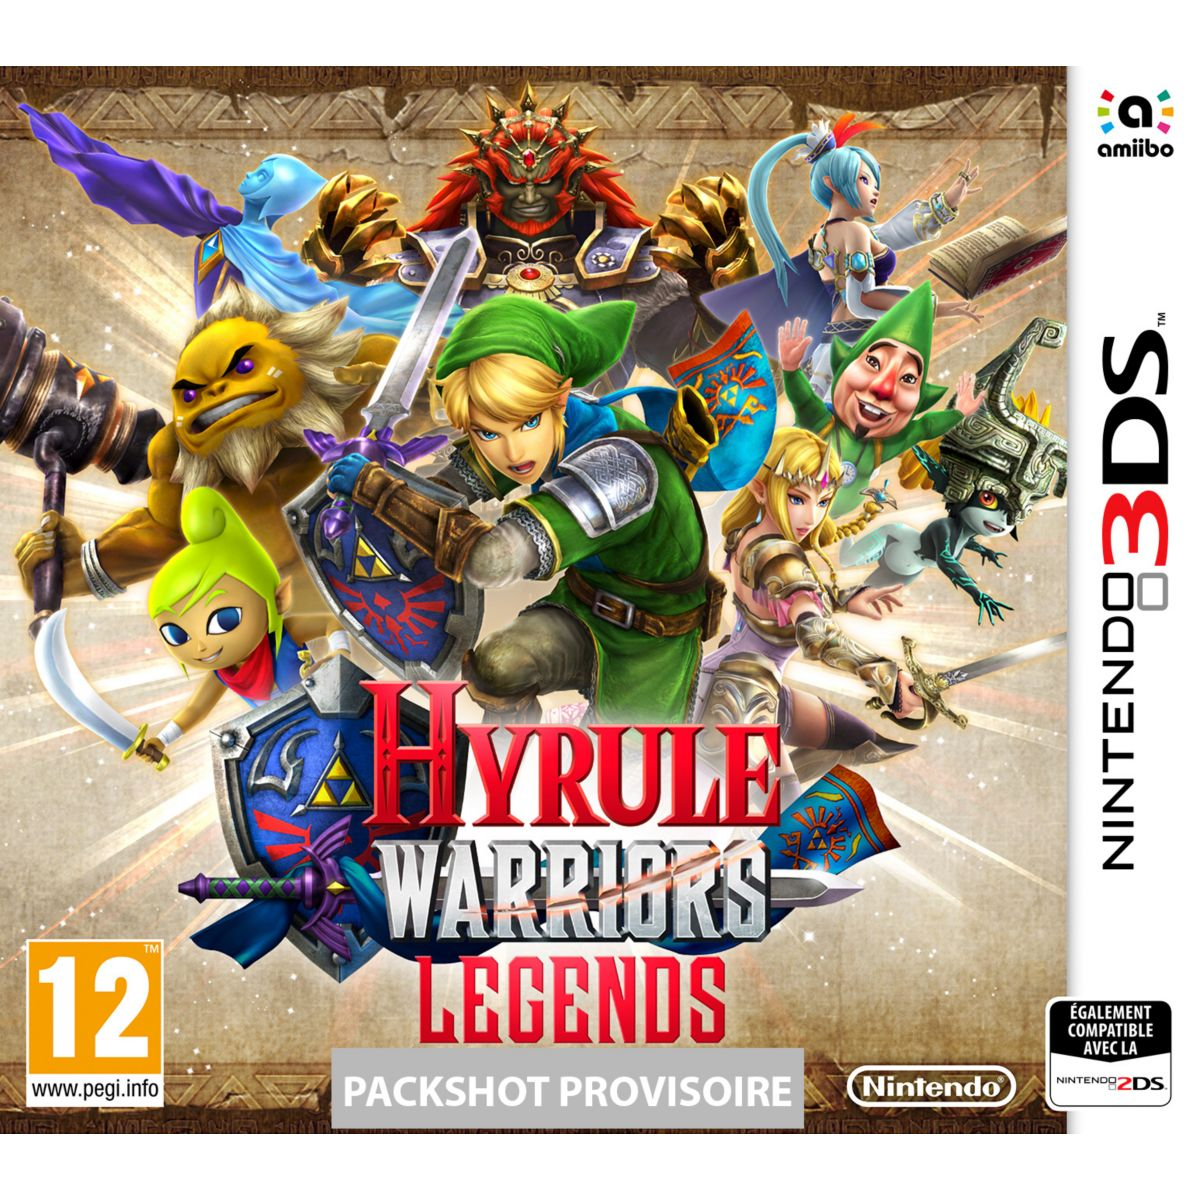 Jeu 3ds nintendo hyrule warriors legends - 2% de remise immédiate avec le code : cool2 (photo)